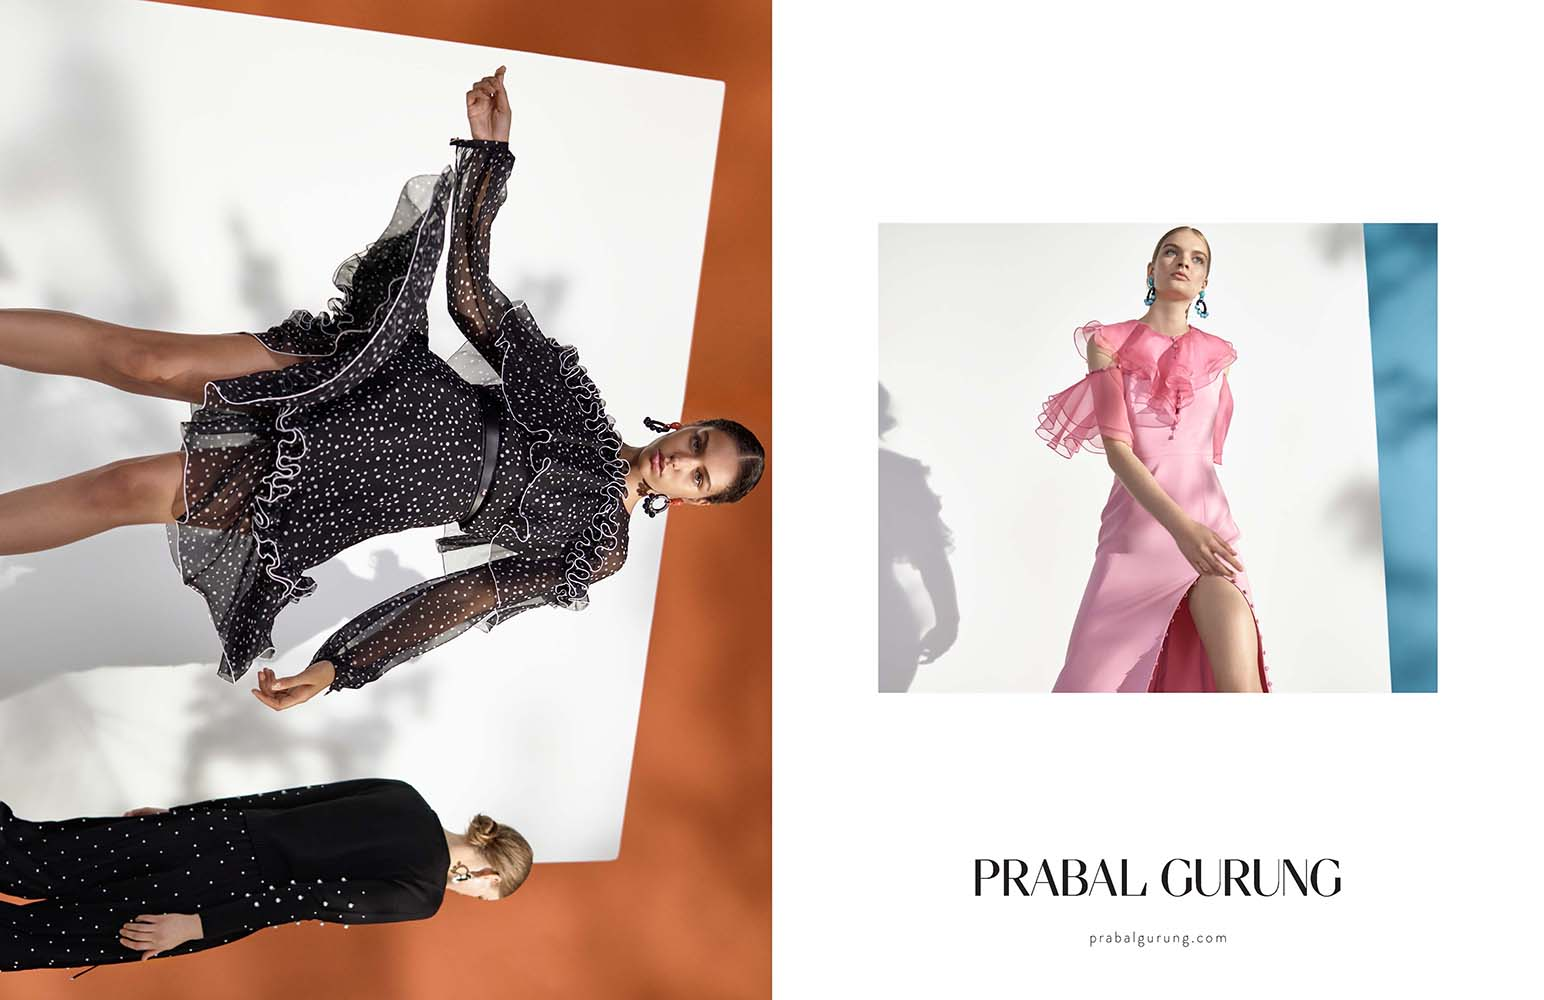 Prabal Gurung by Stina Daag